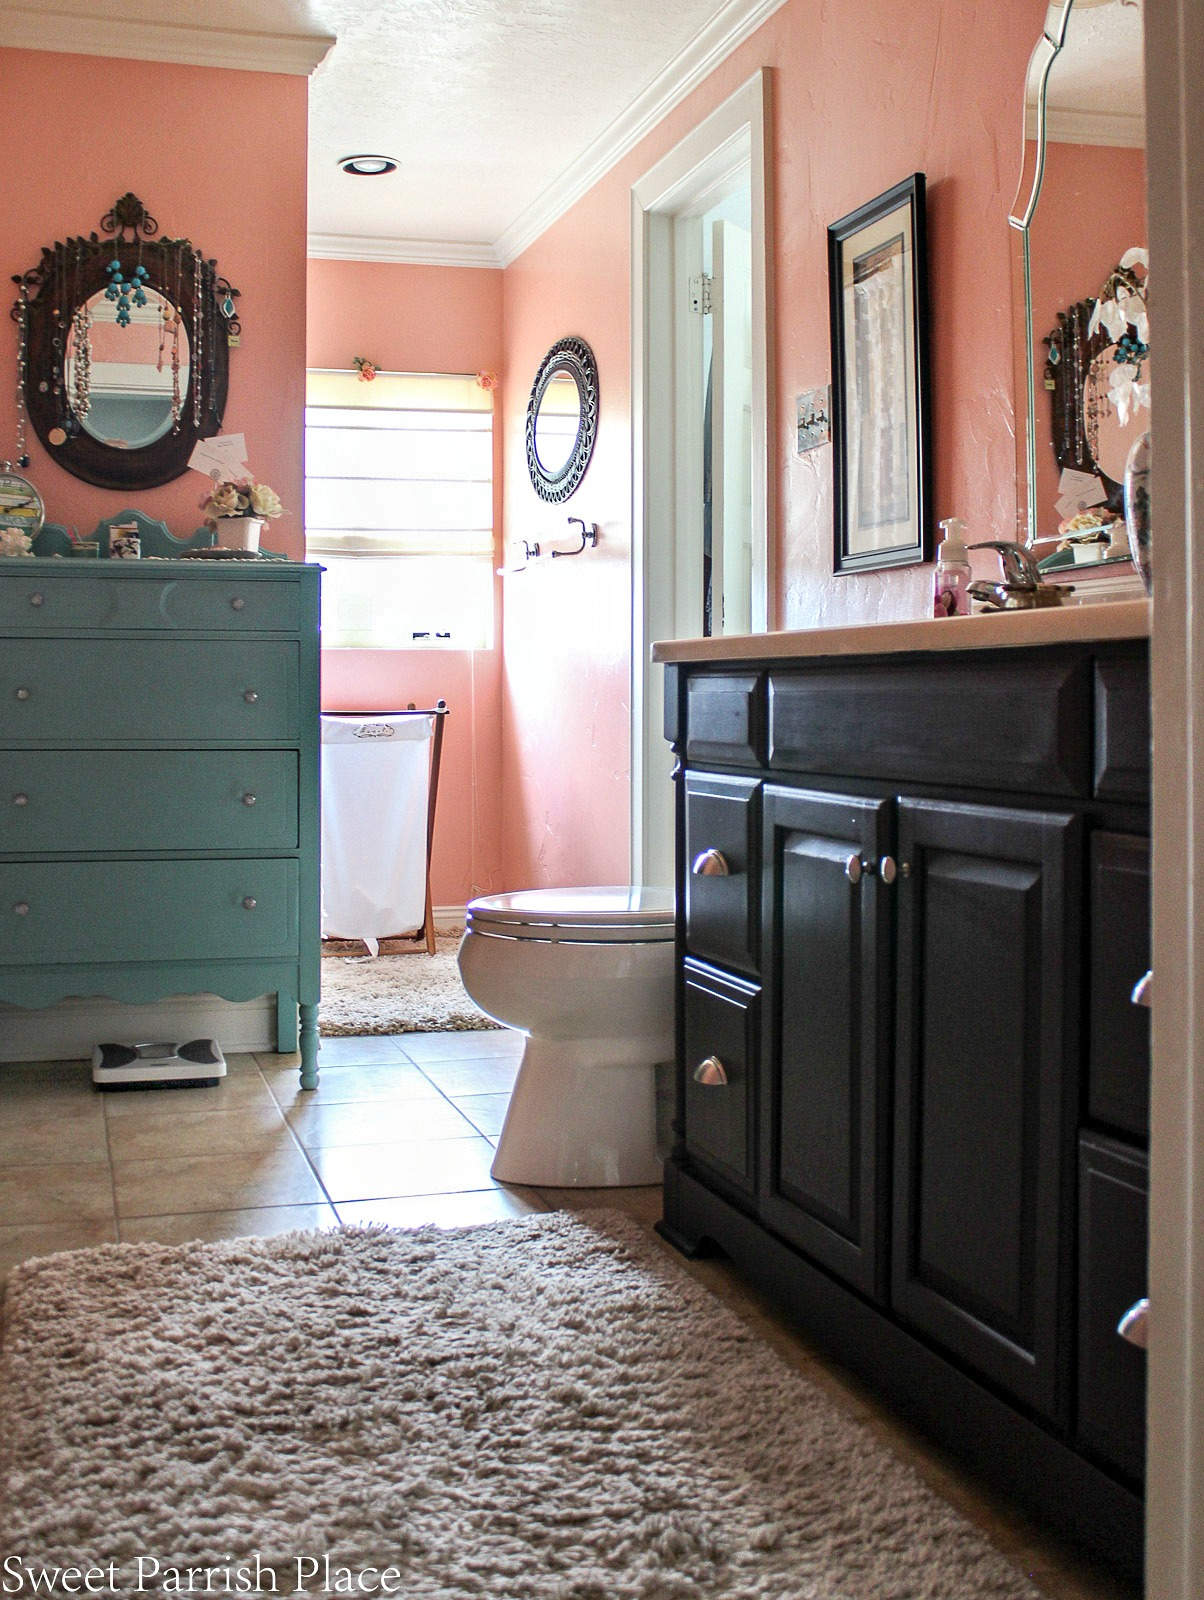 97 year old home tour-master bathroom